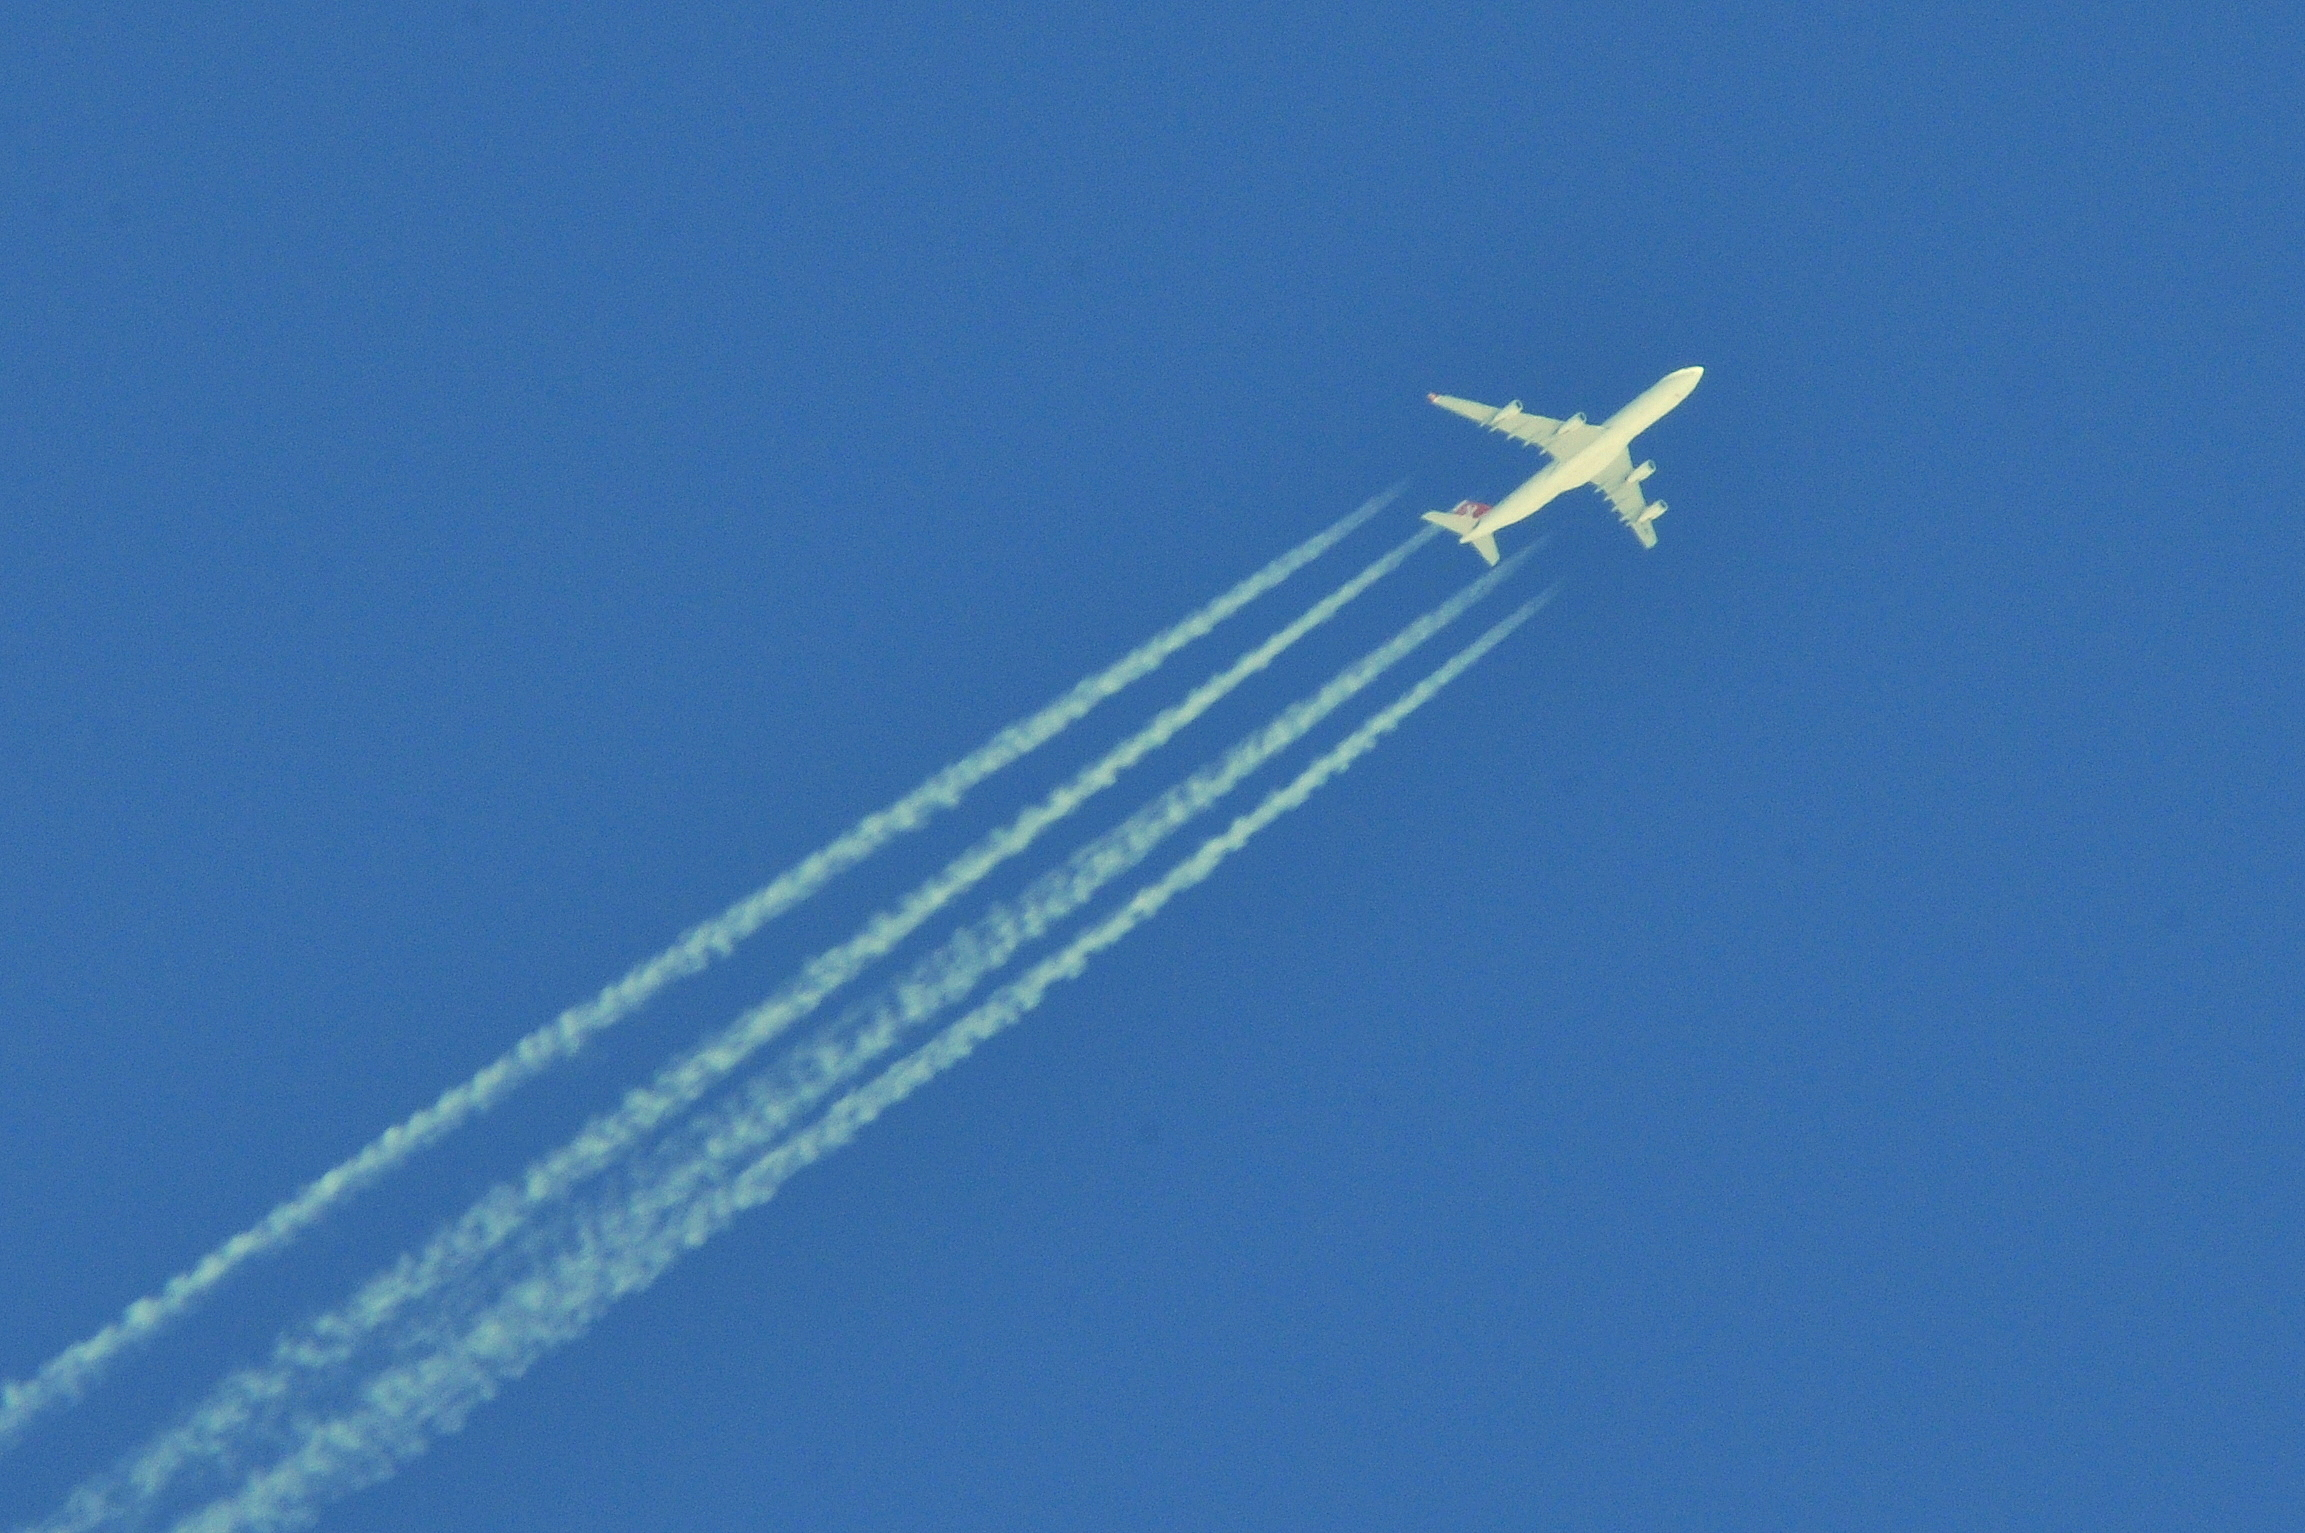 Airplane tracks clipart banner freeuse Contrail - Wikipedia banner freeuse